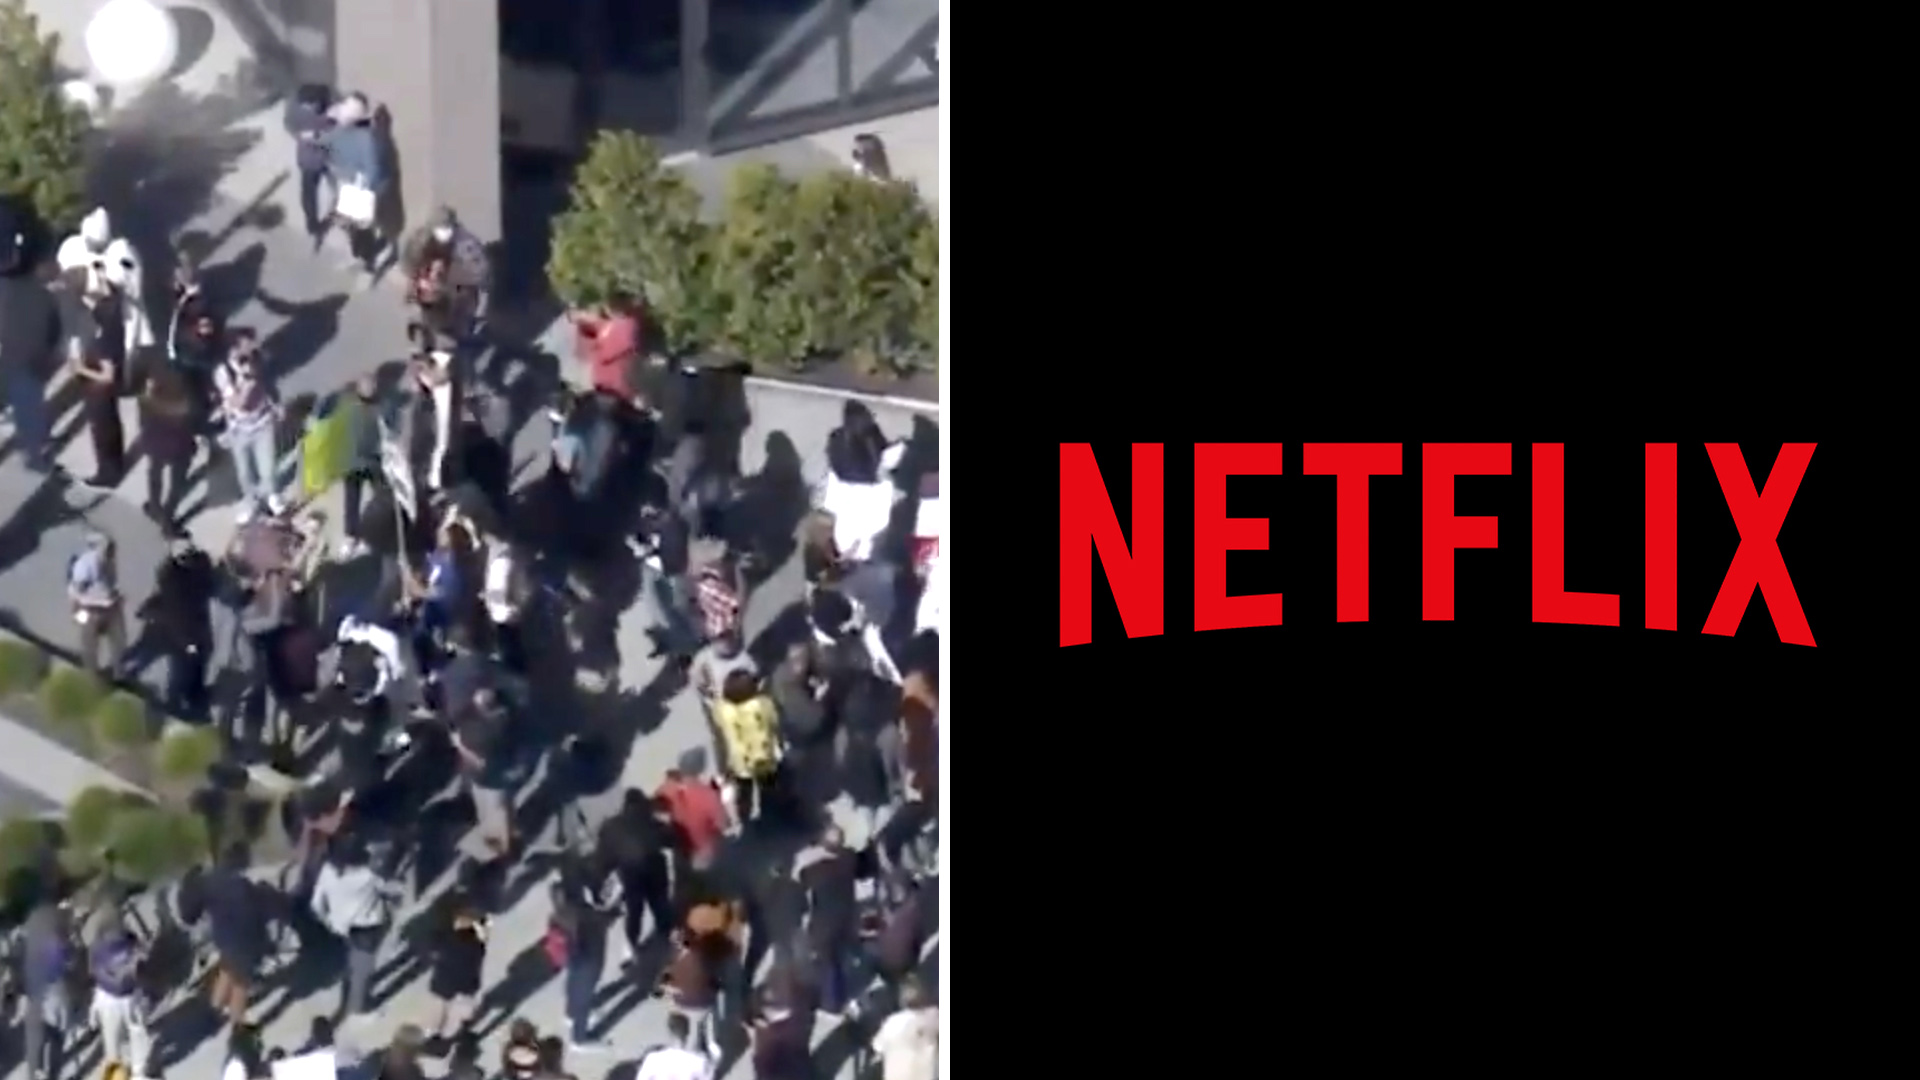 'We like Dave': Pro-Dave Chappelle protesters counter anti-Netflix trans activists